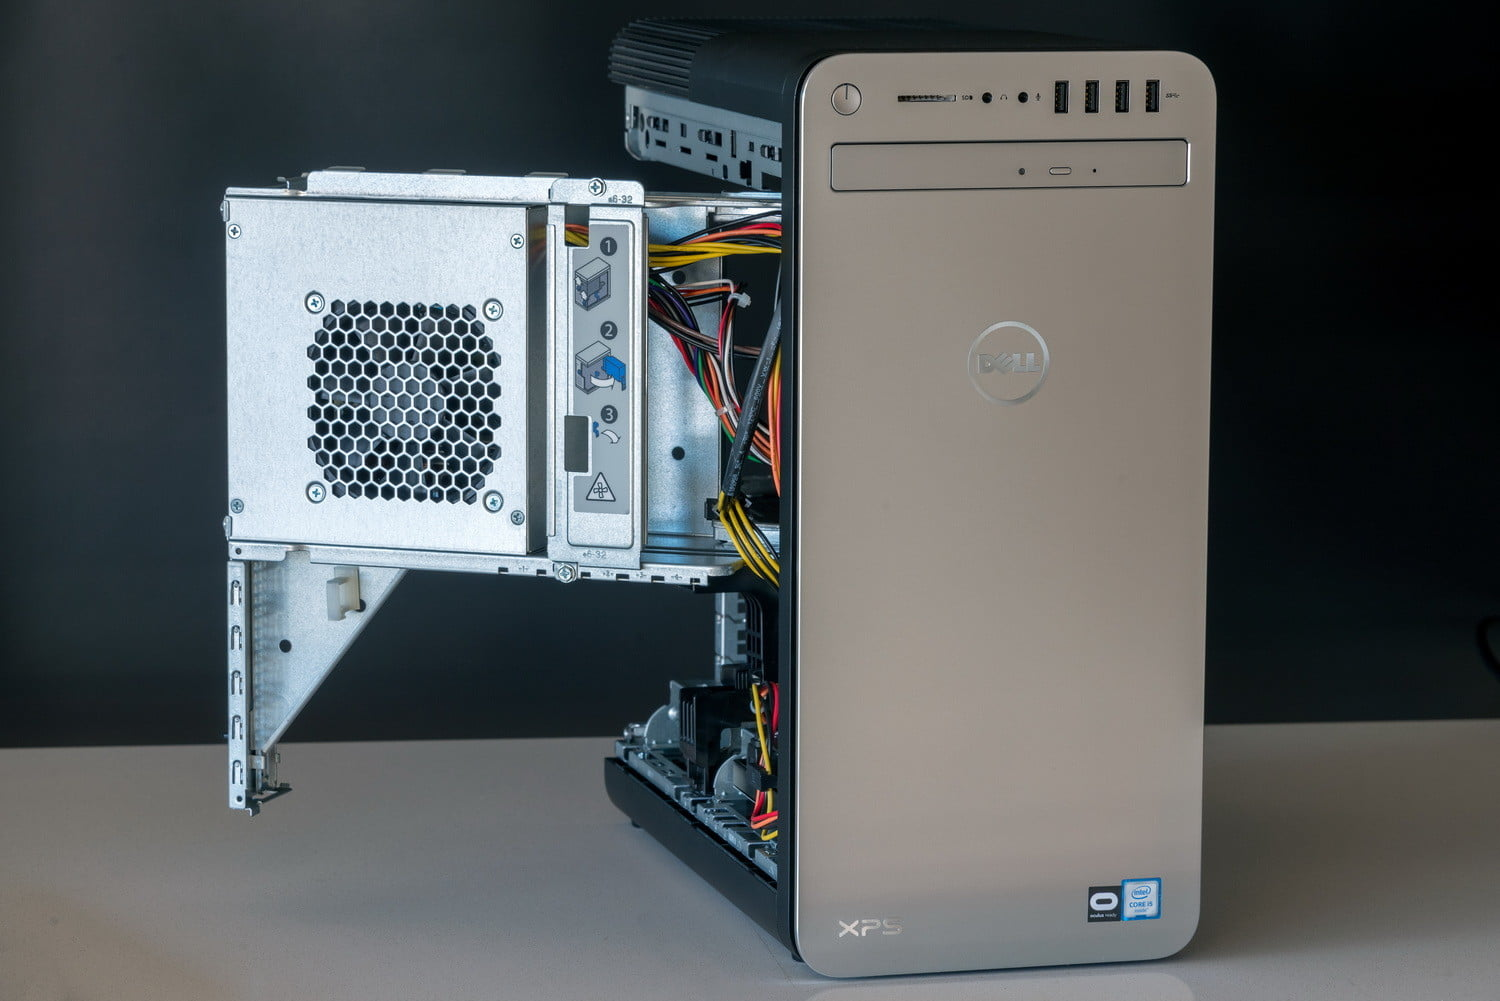 Dell XPS89107020BLK Desktop 6th Generation Intel Core I7 16GB RAM 1 TB HDD NVIDIA GeForce GTX 750Ti Ap B01LD5V8GK in addition Watch also Lenovo Ideacenter Case Wires Diagram moreover Pci Express Wiring together with Dell Xps Tower Special Edition 8910. on dell xps 8910 motherboard